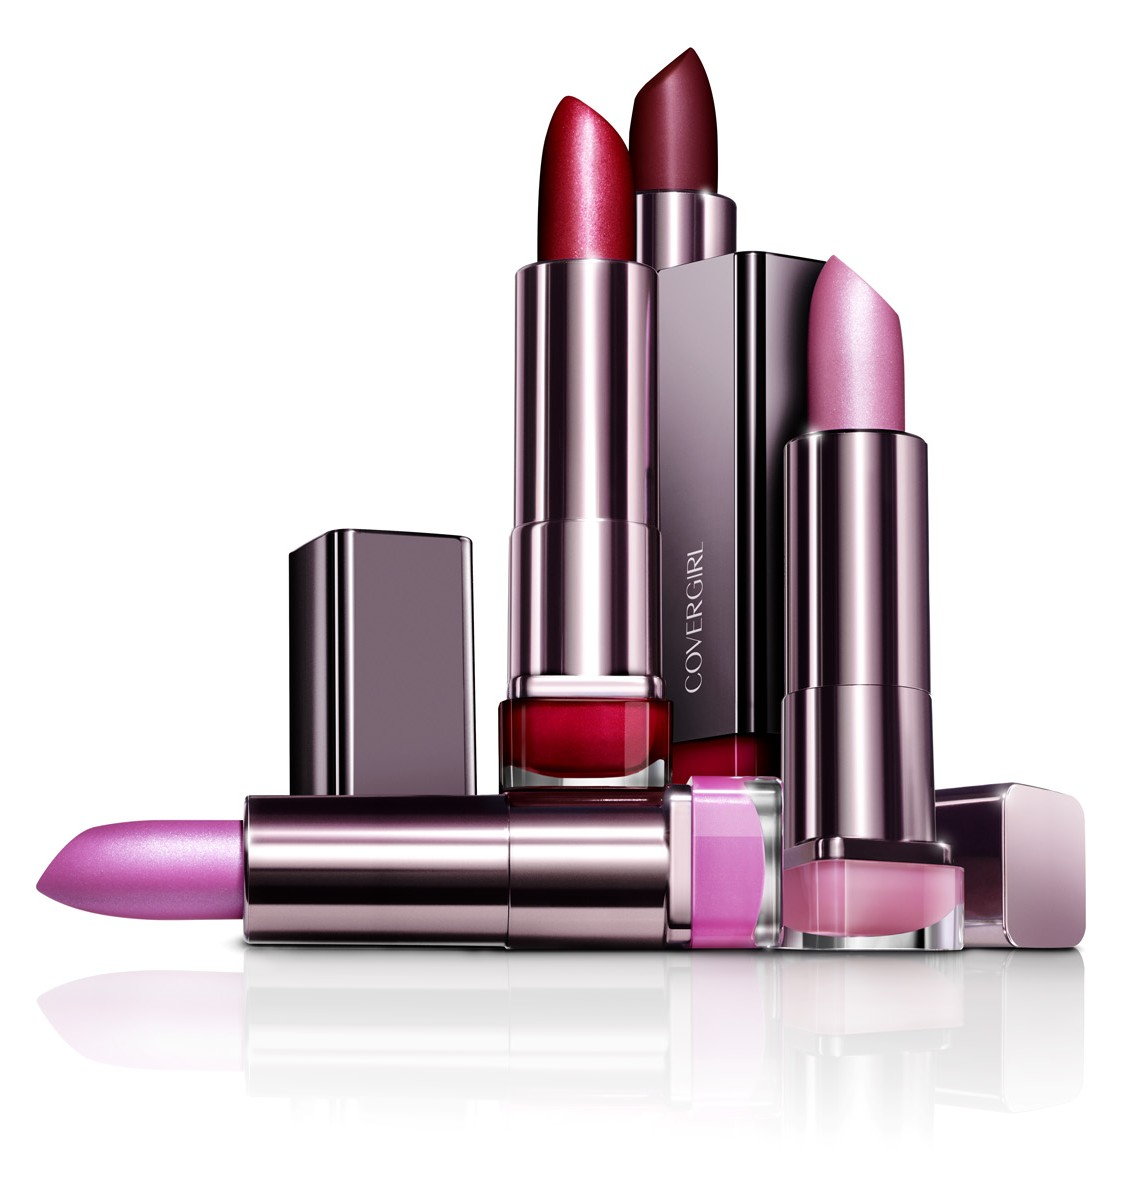 Beauty cosmetics for fall and winter - just trendy girls.